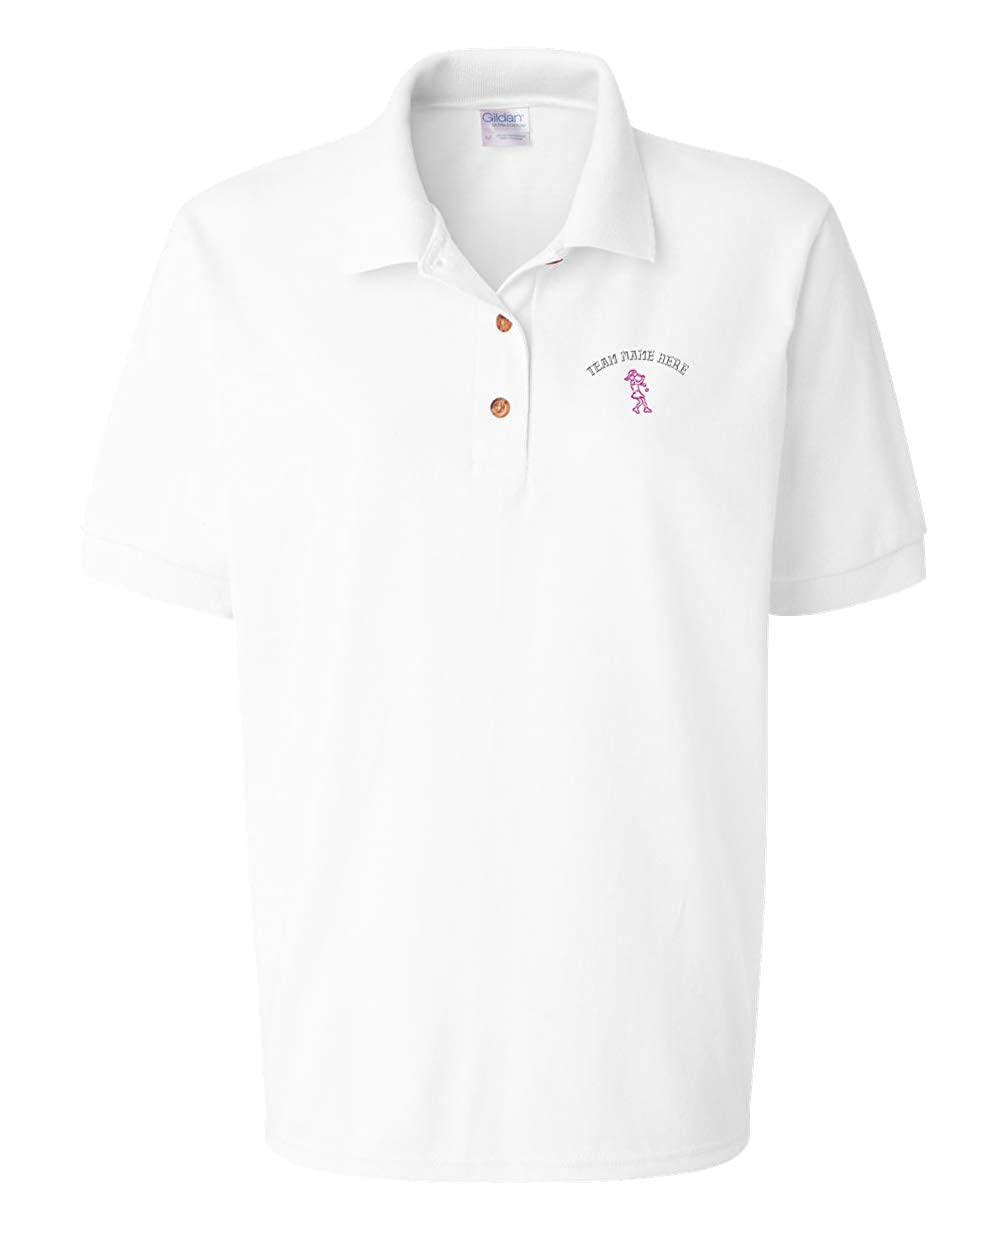 7a39edc07 Embroidered Womens Polo Shirts - DREAMWORKS